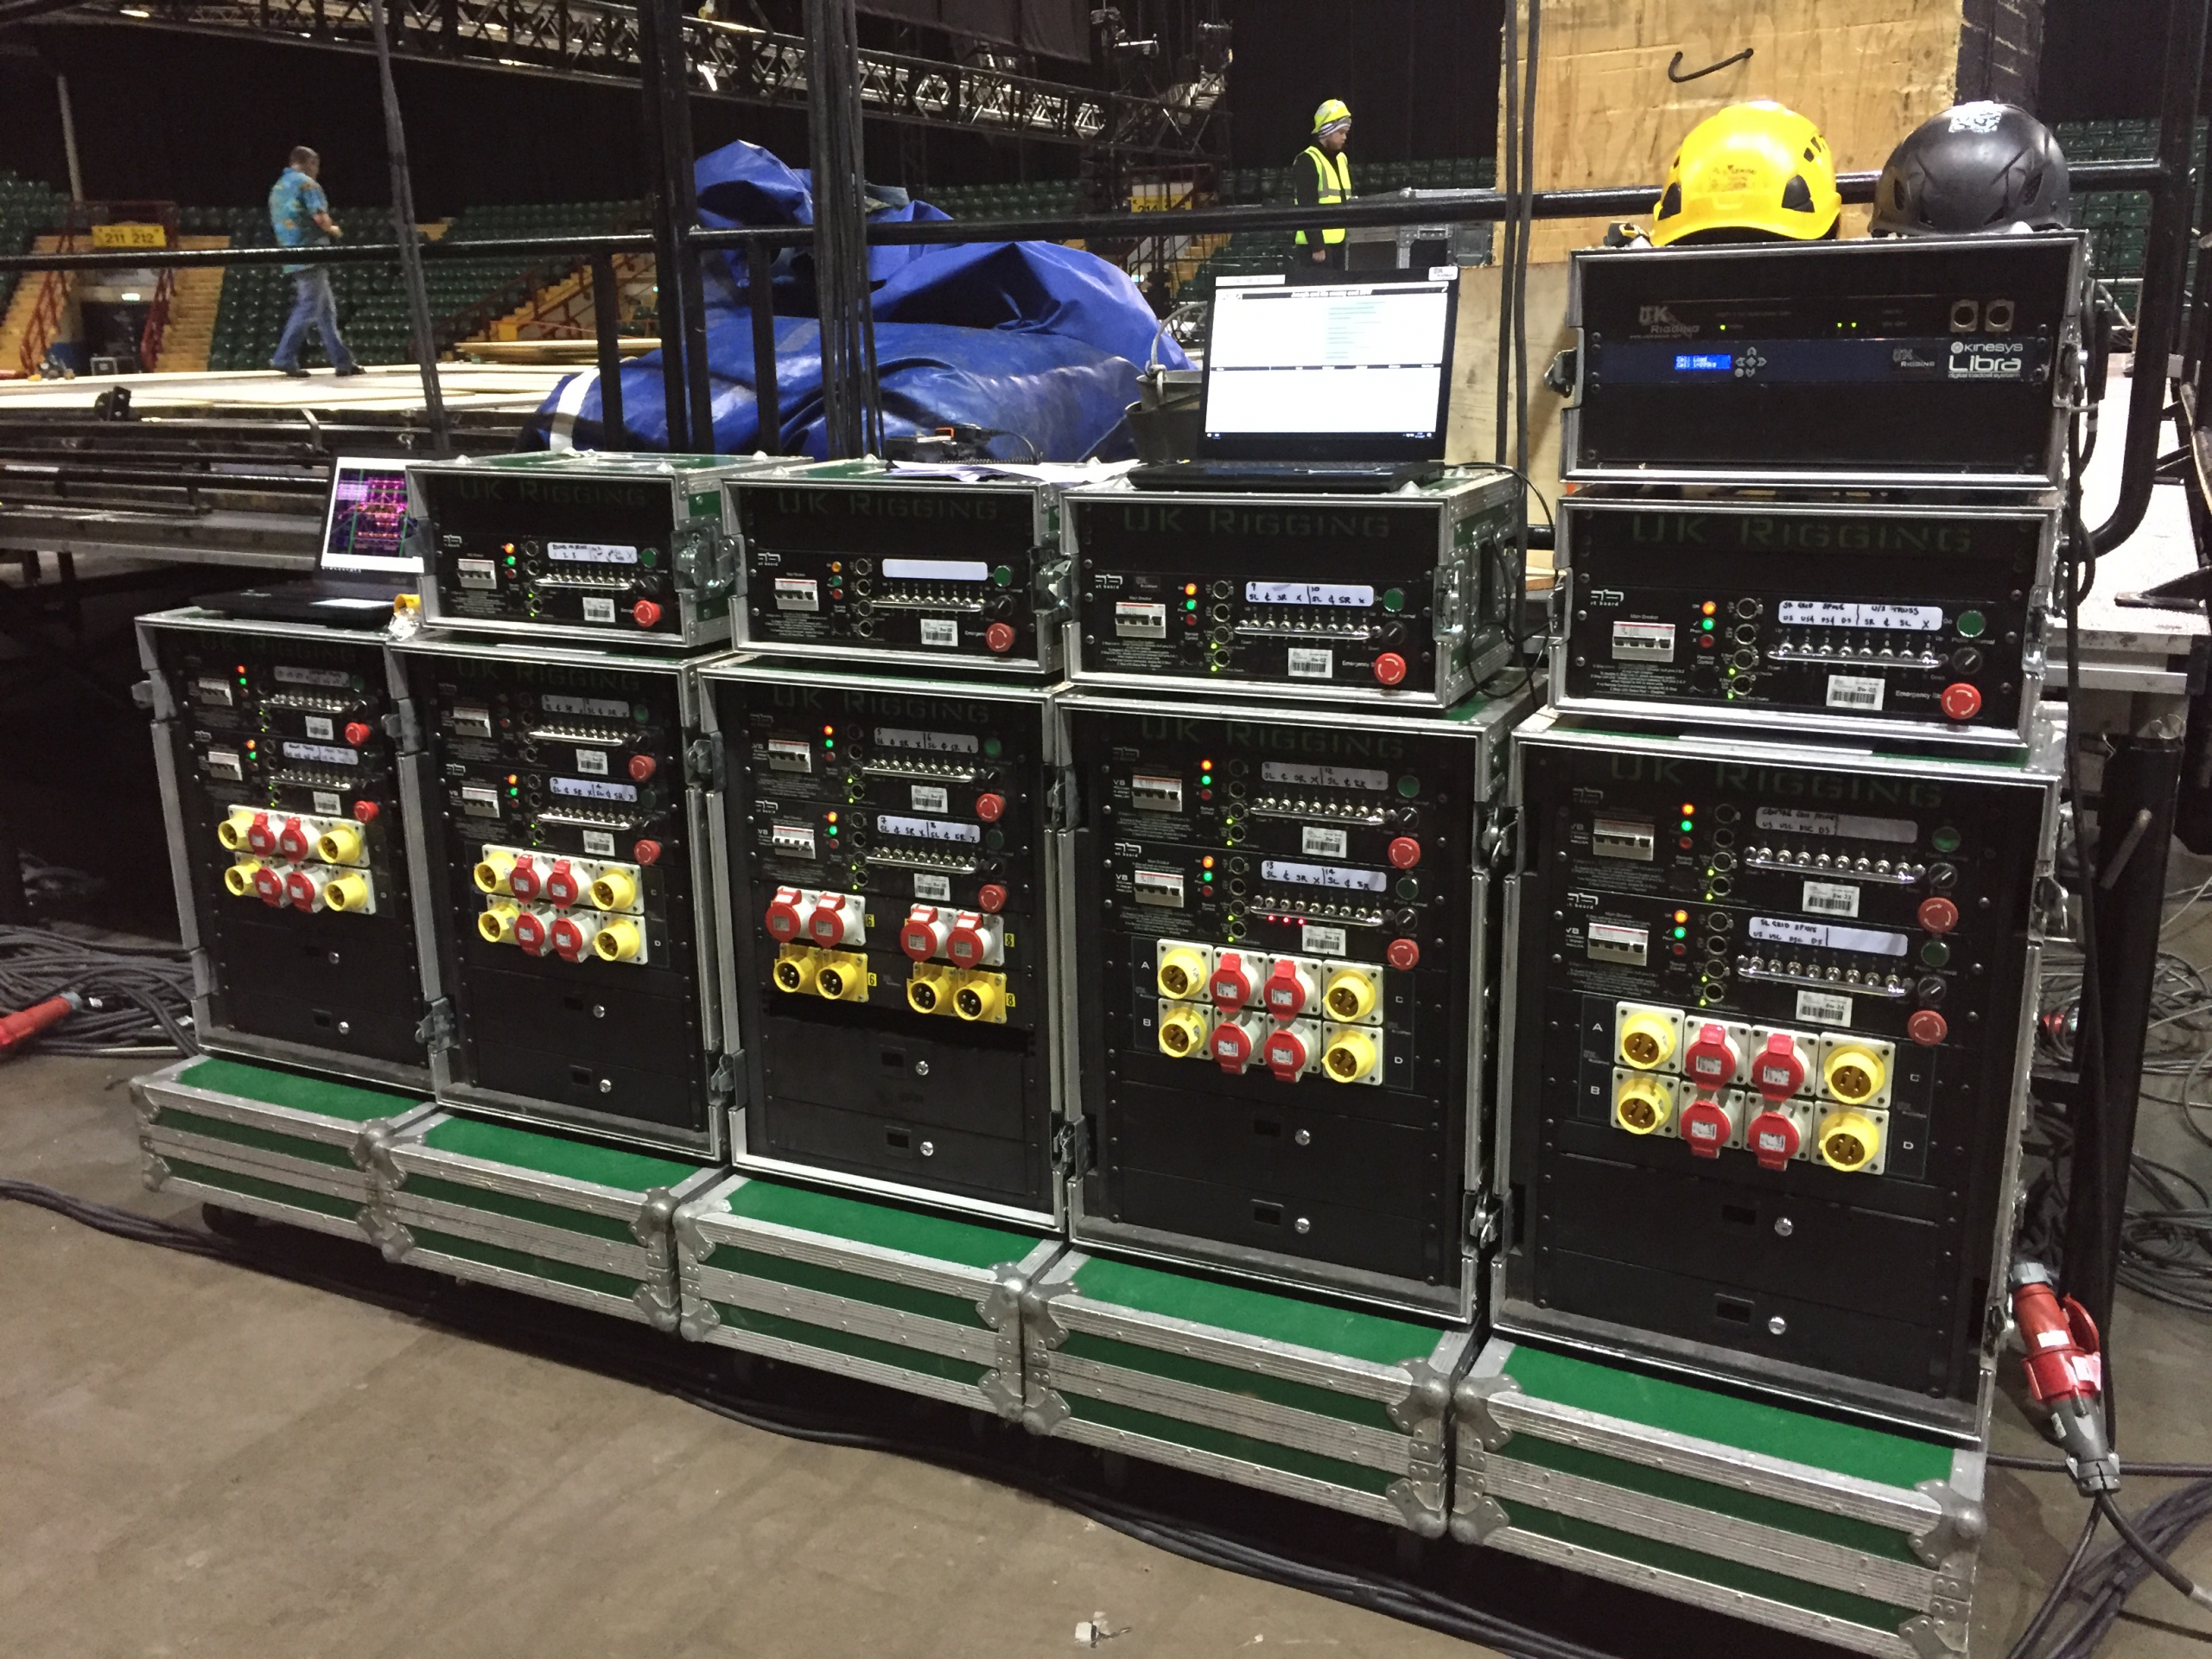 UK Rigging Called to Assist at Joseph and the Amazing Technicolor Dreamcoat Pantomime | Newcastle